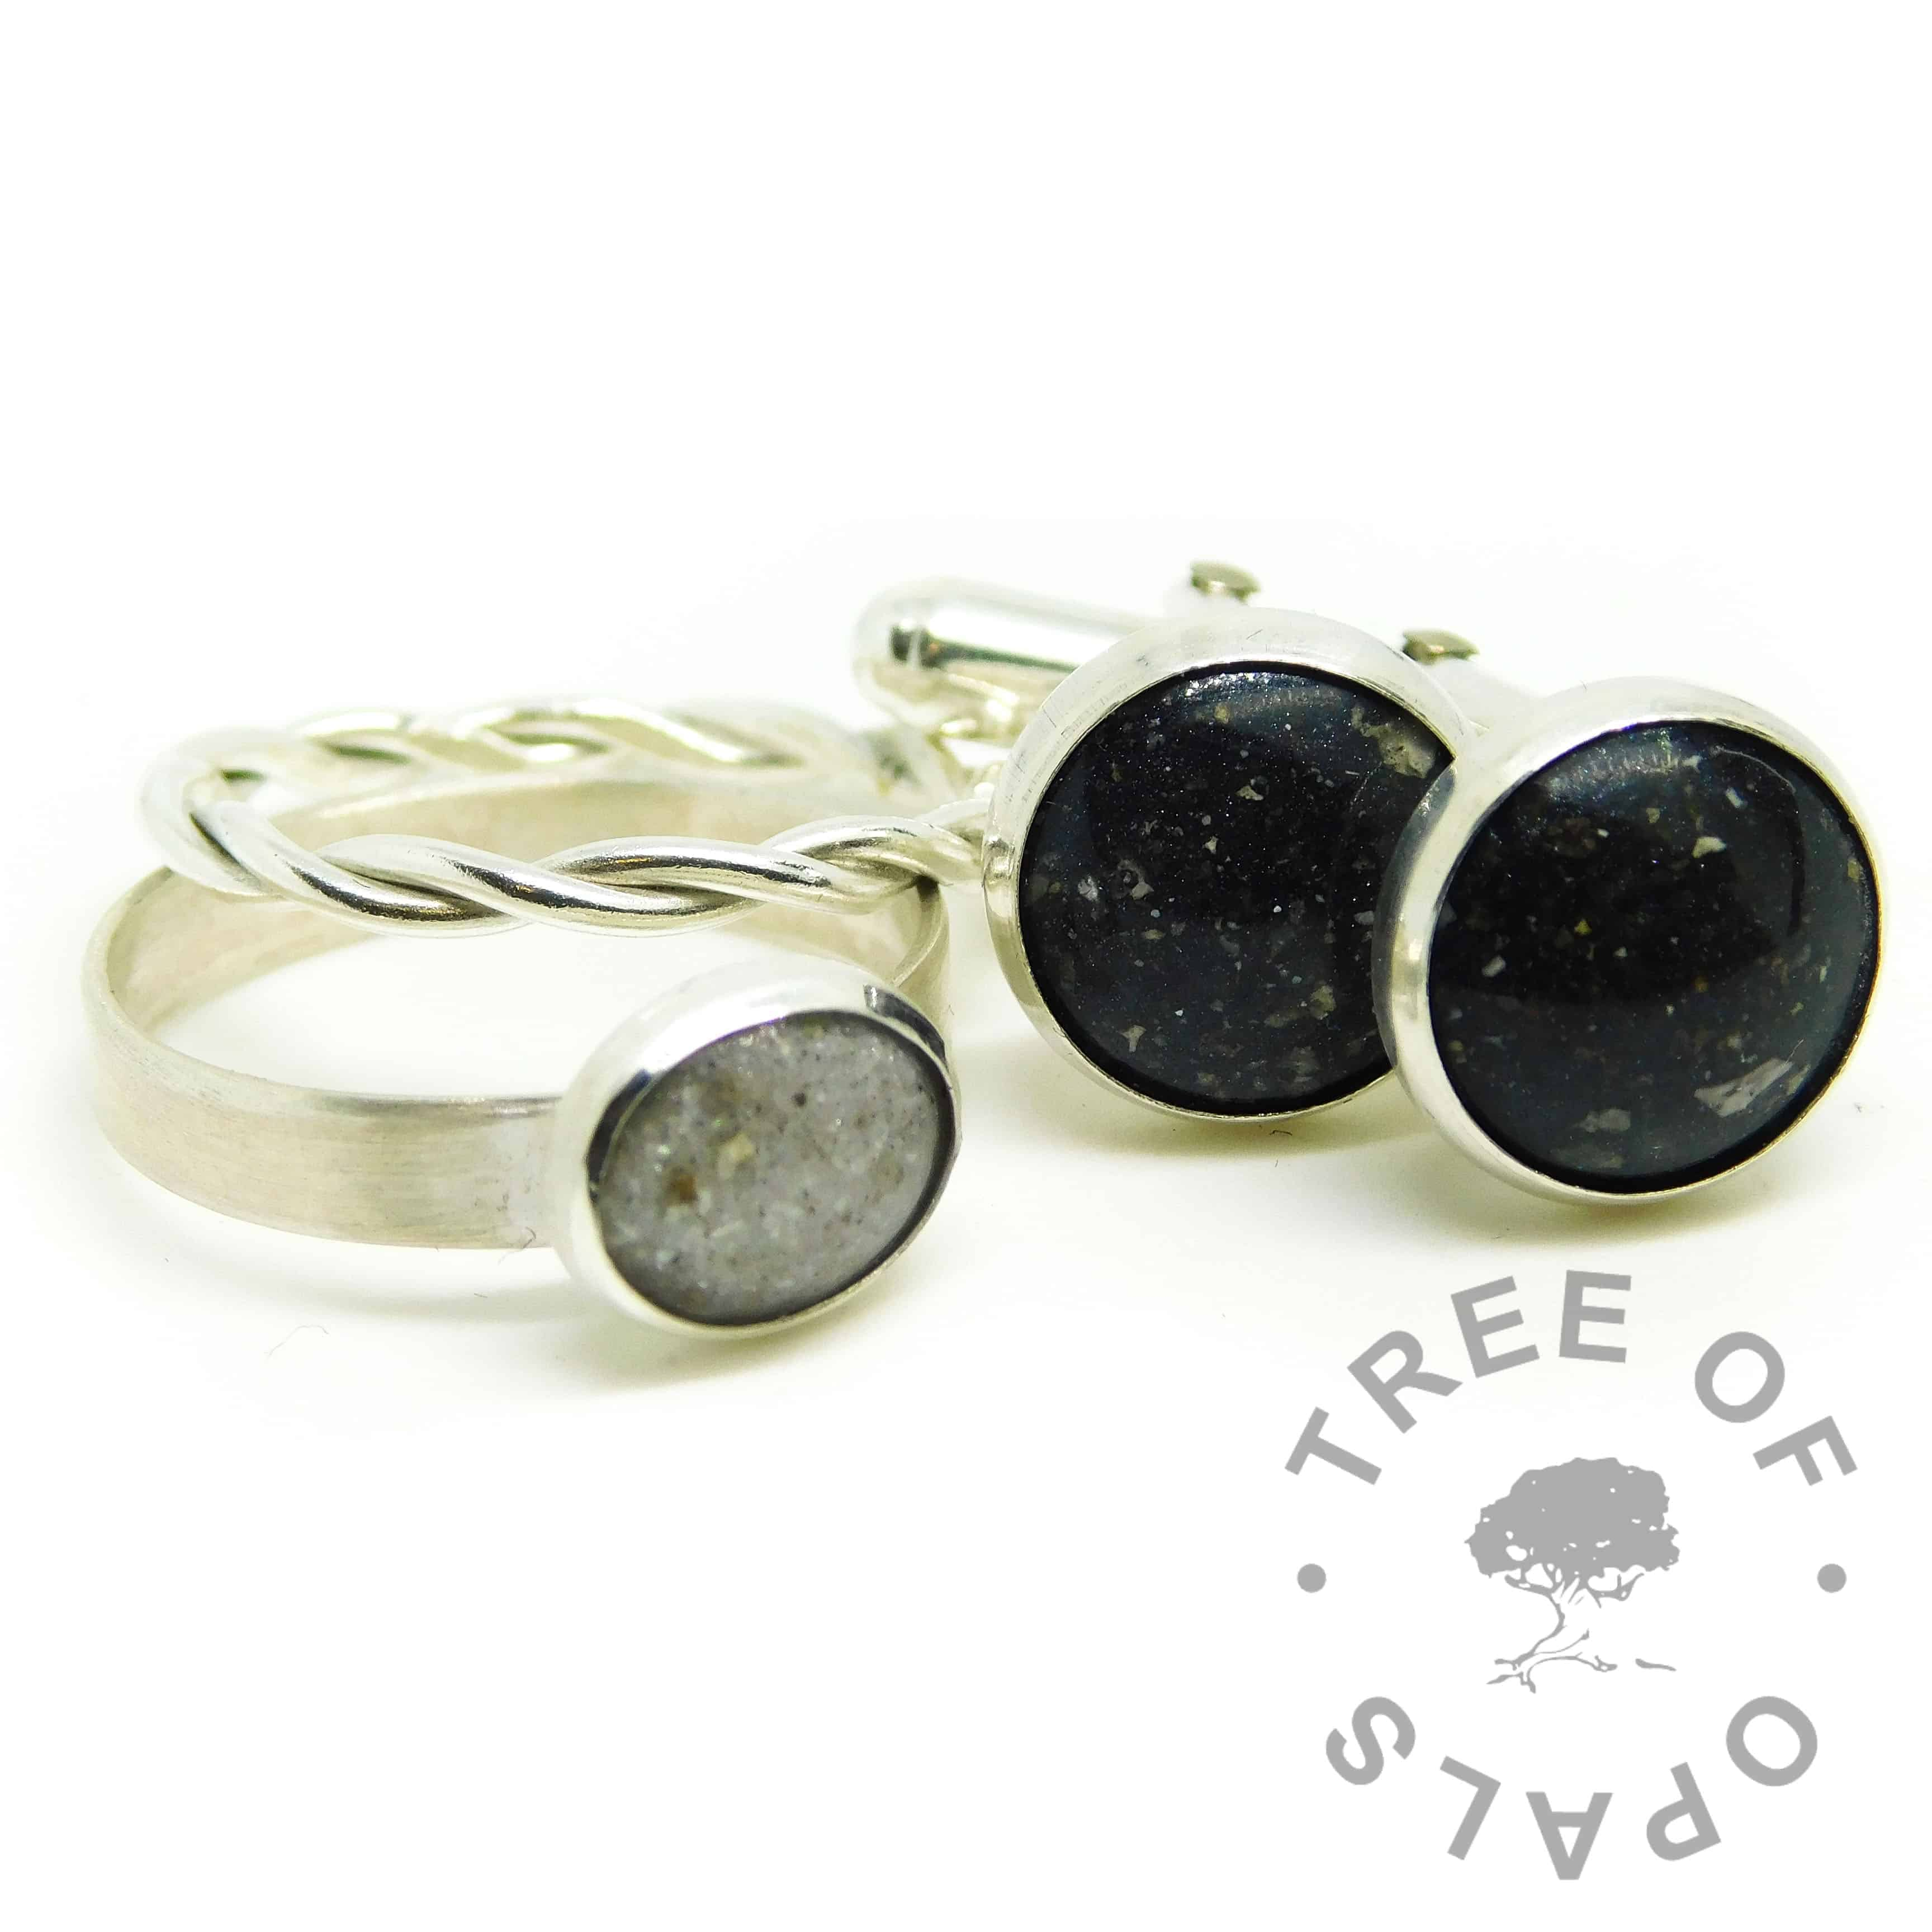 cremation ashes cufflinks with Vampire Black Resin Sparkle Mix and a unicorn white ring on brushed band shown with a twisted band slim stacking ring